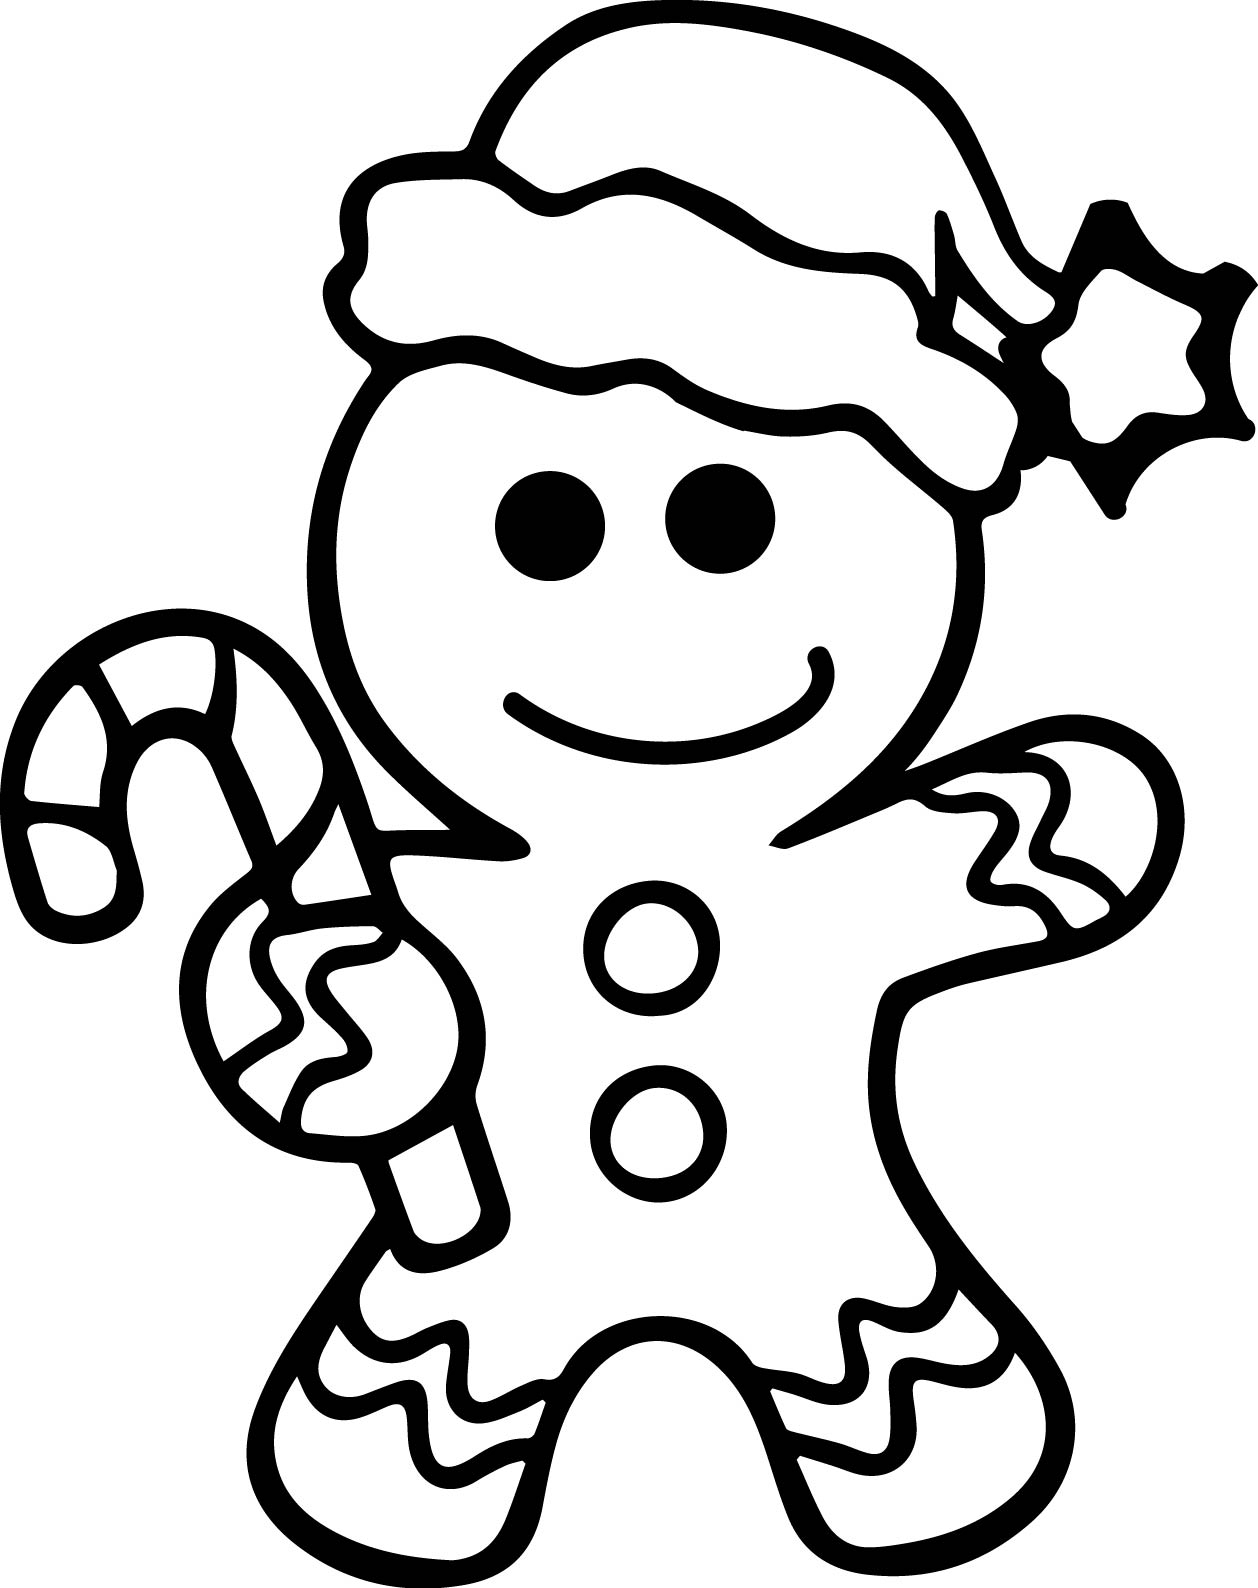 Christmas Coloring Pages Gingerbread With Man Printable